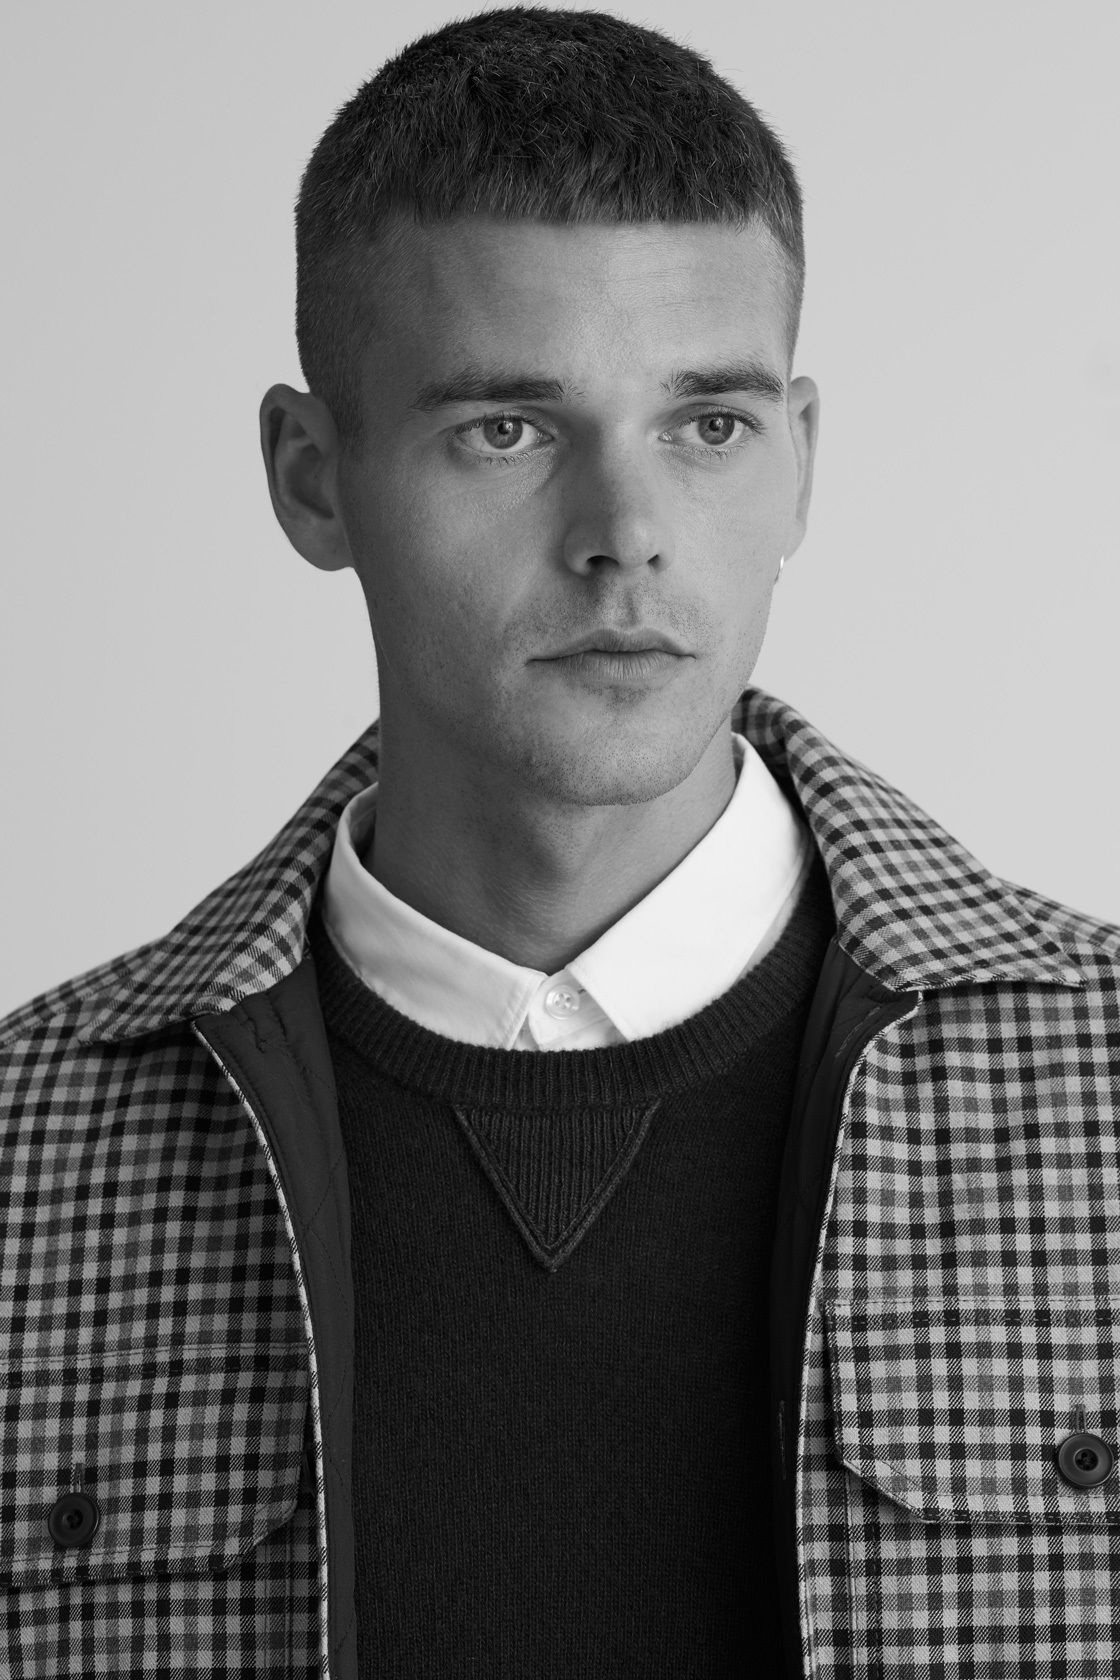 Yannick Schuette c/o FREDA+WOOLF for Closed Official